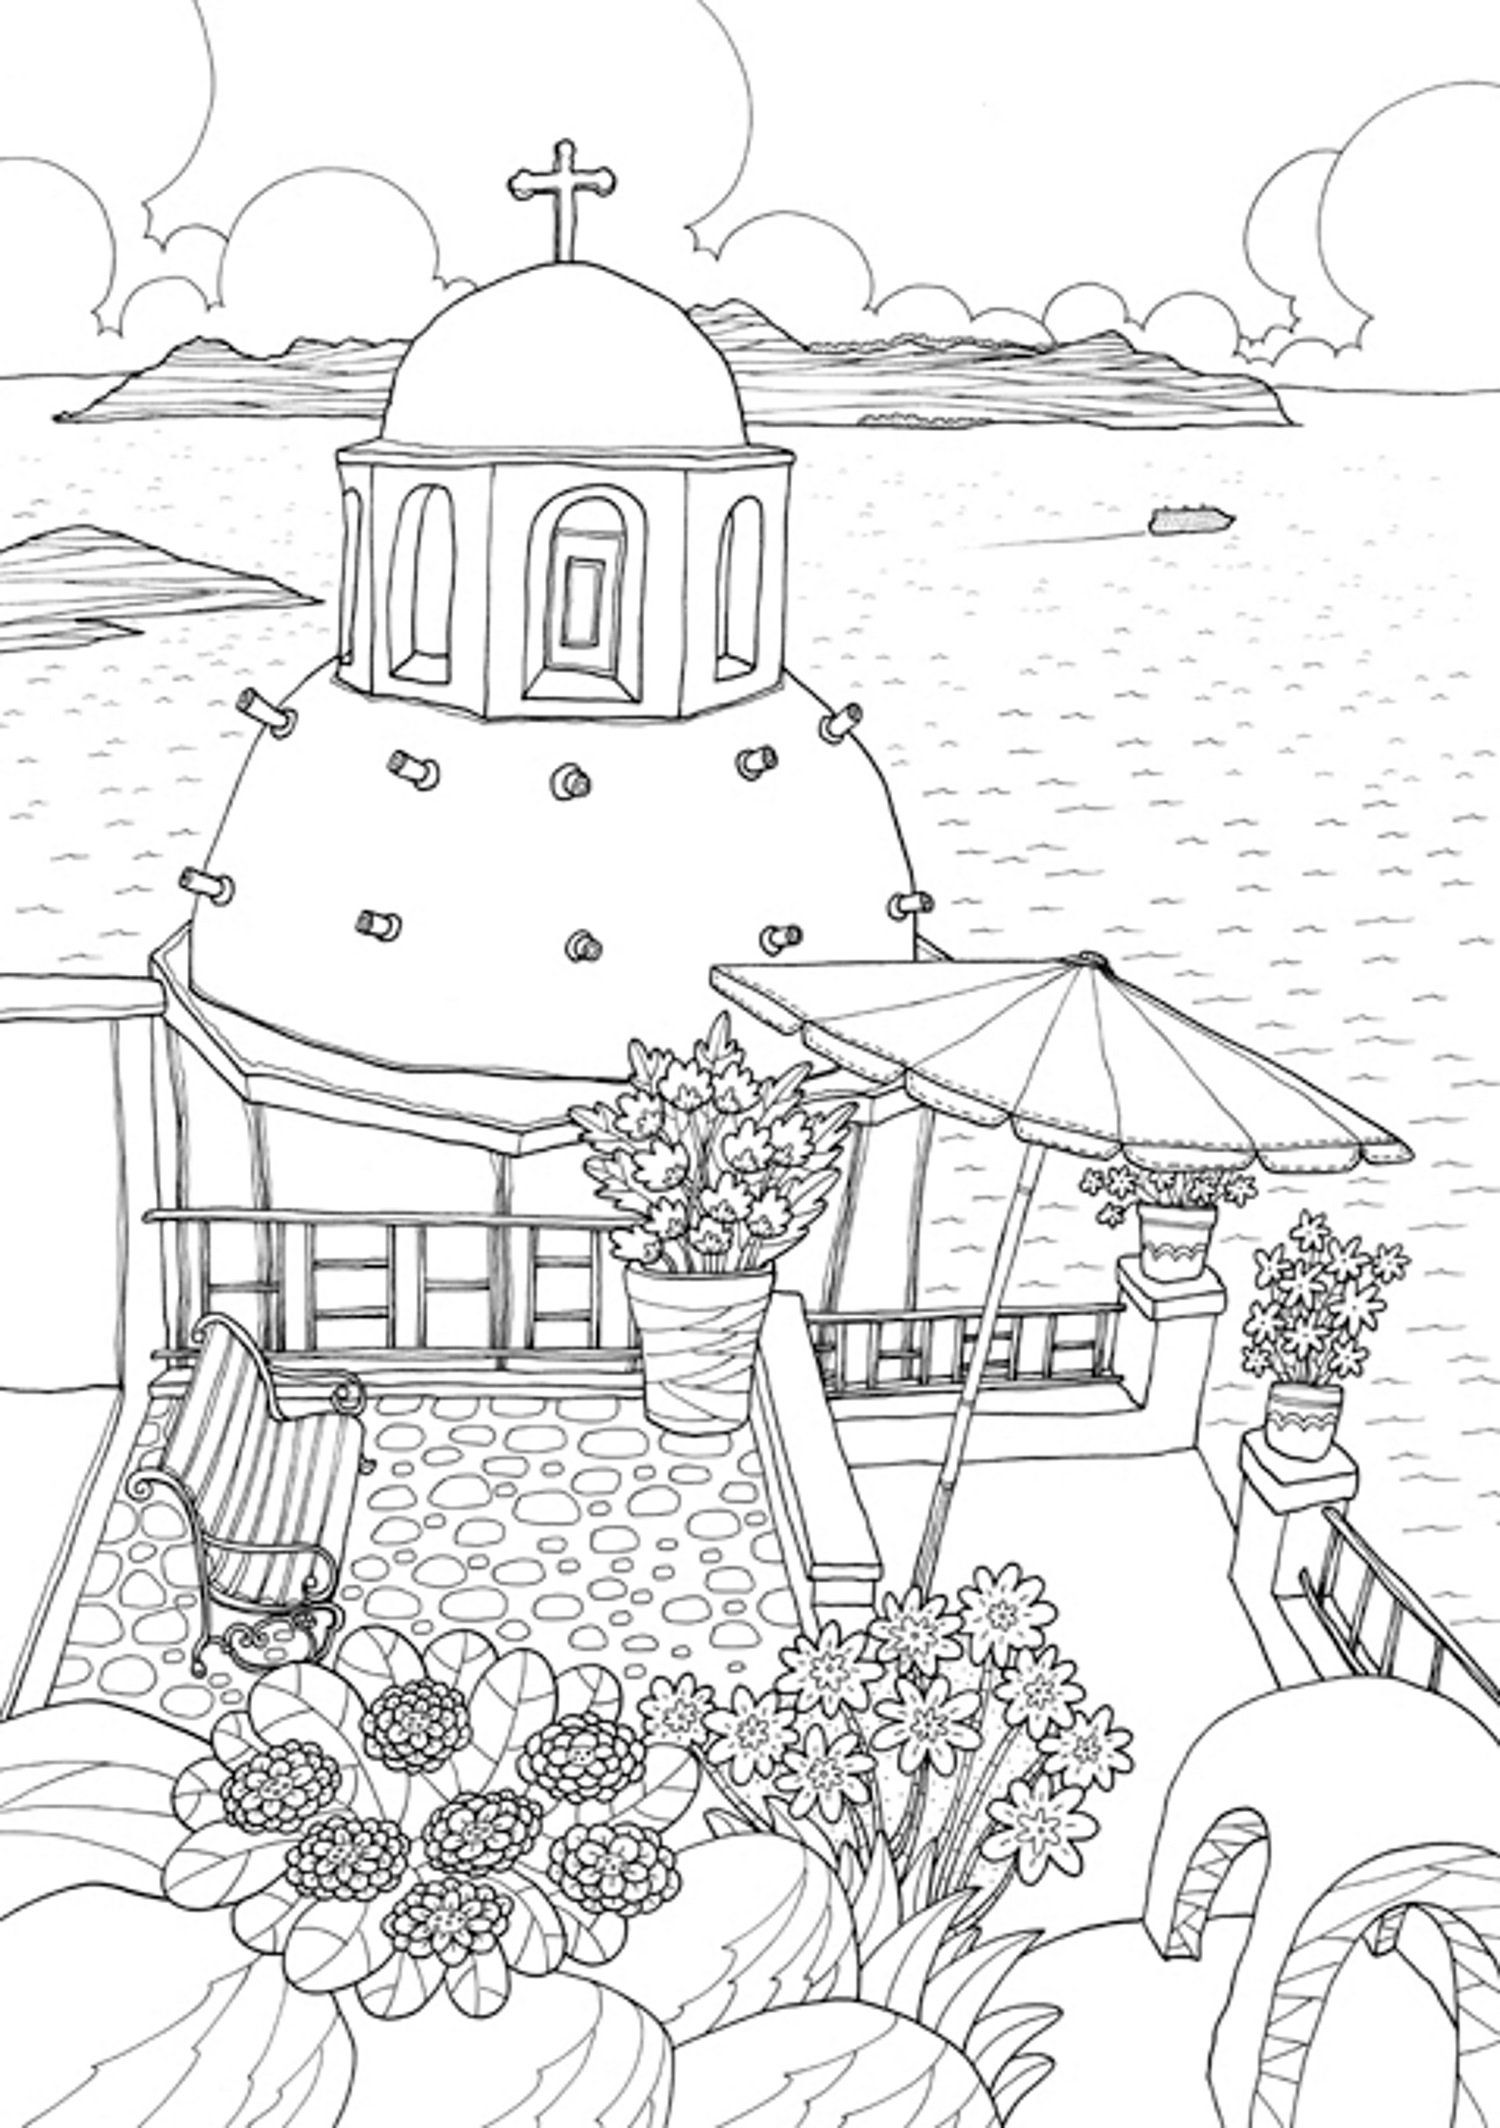 coloring europe magical greece a coloring book tour of greek lifestyle and culture il sun lee. Black Bedroom Furniture Sets. Home Design Ideas